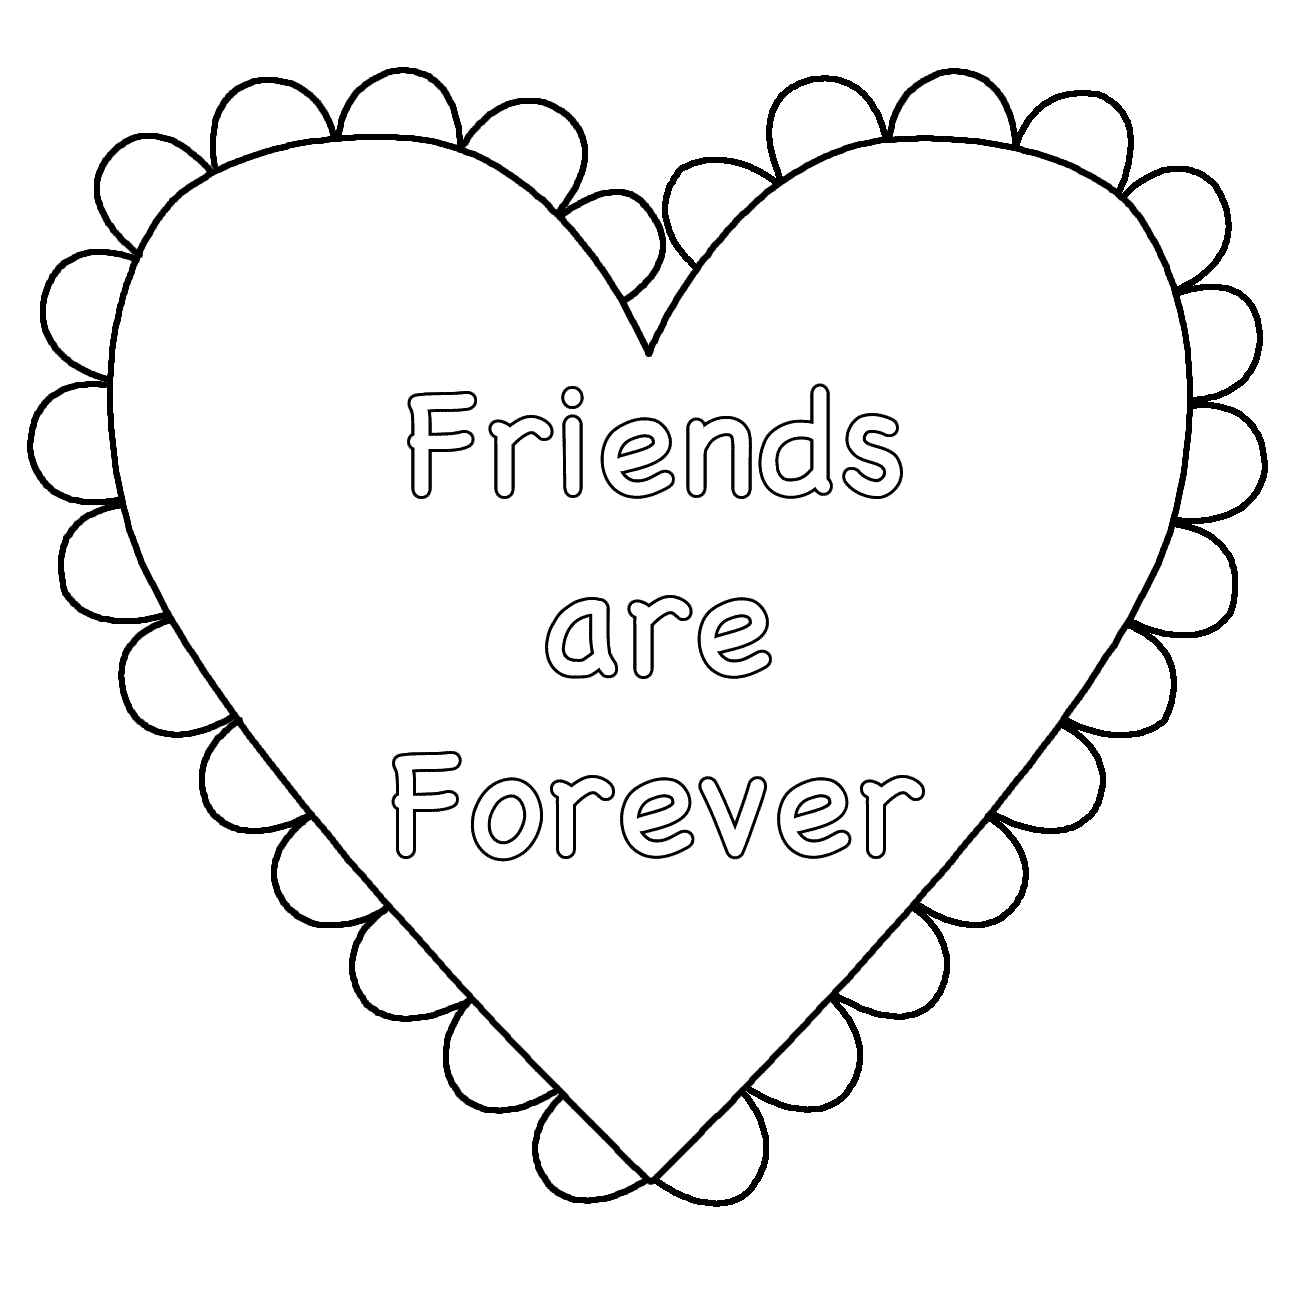 best friends coloring pages coloring style pages - Friendship Coloring Pages